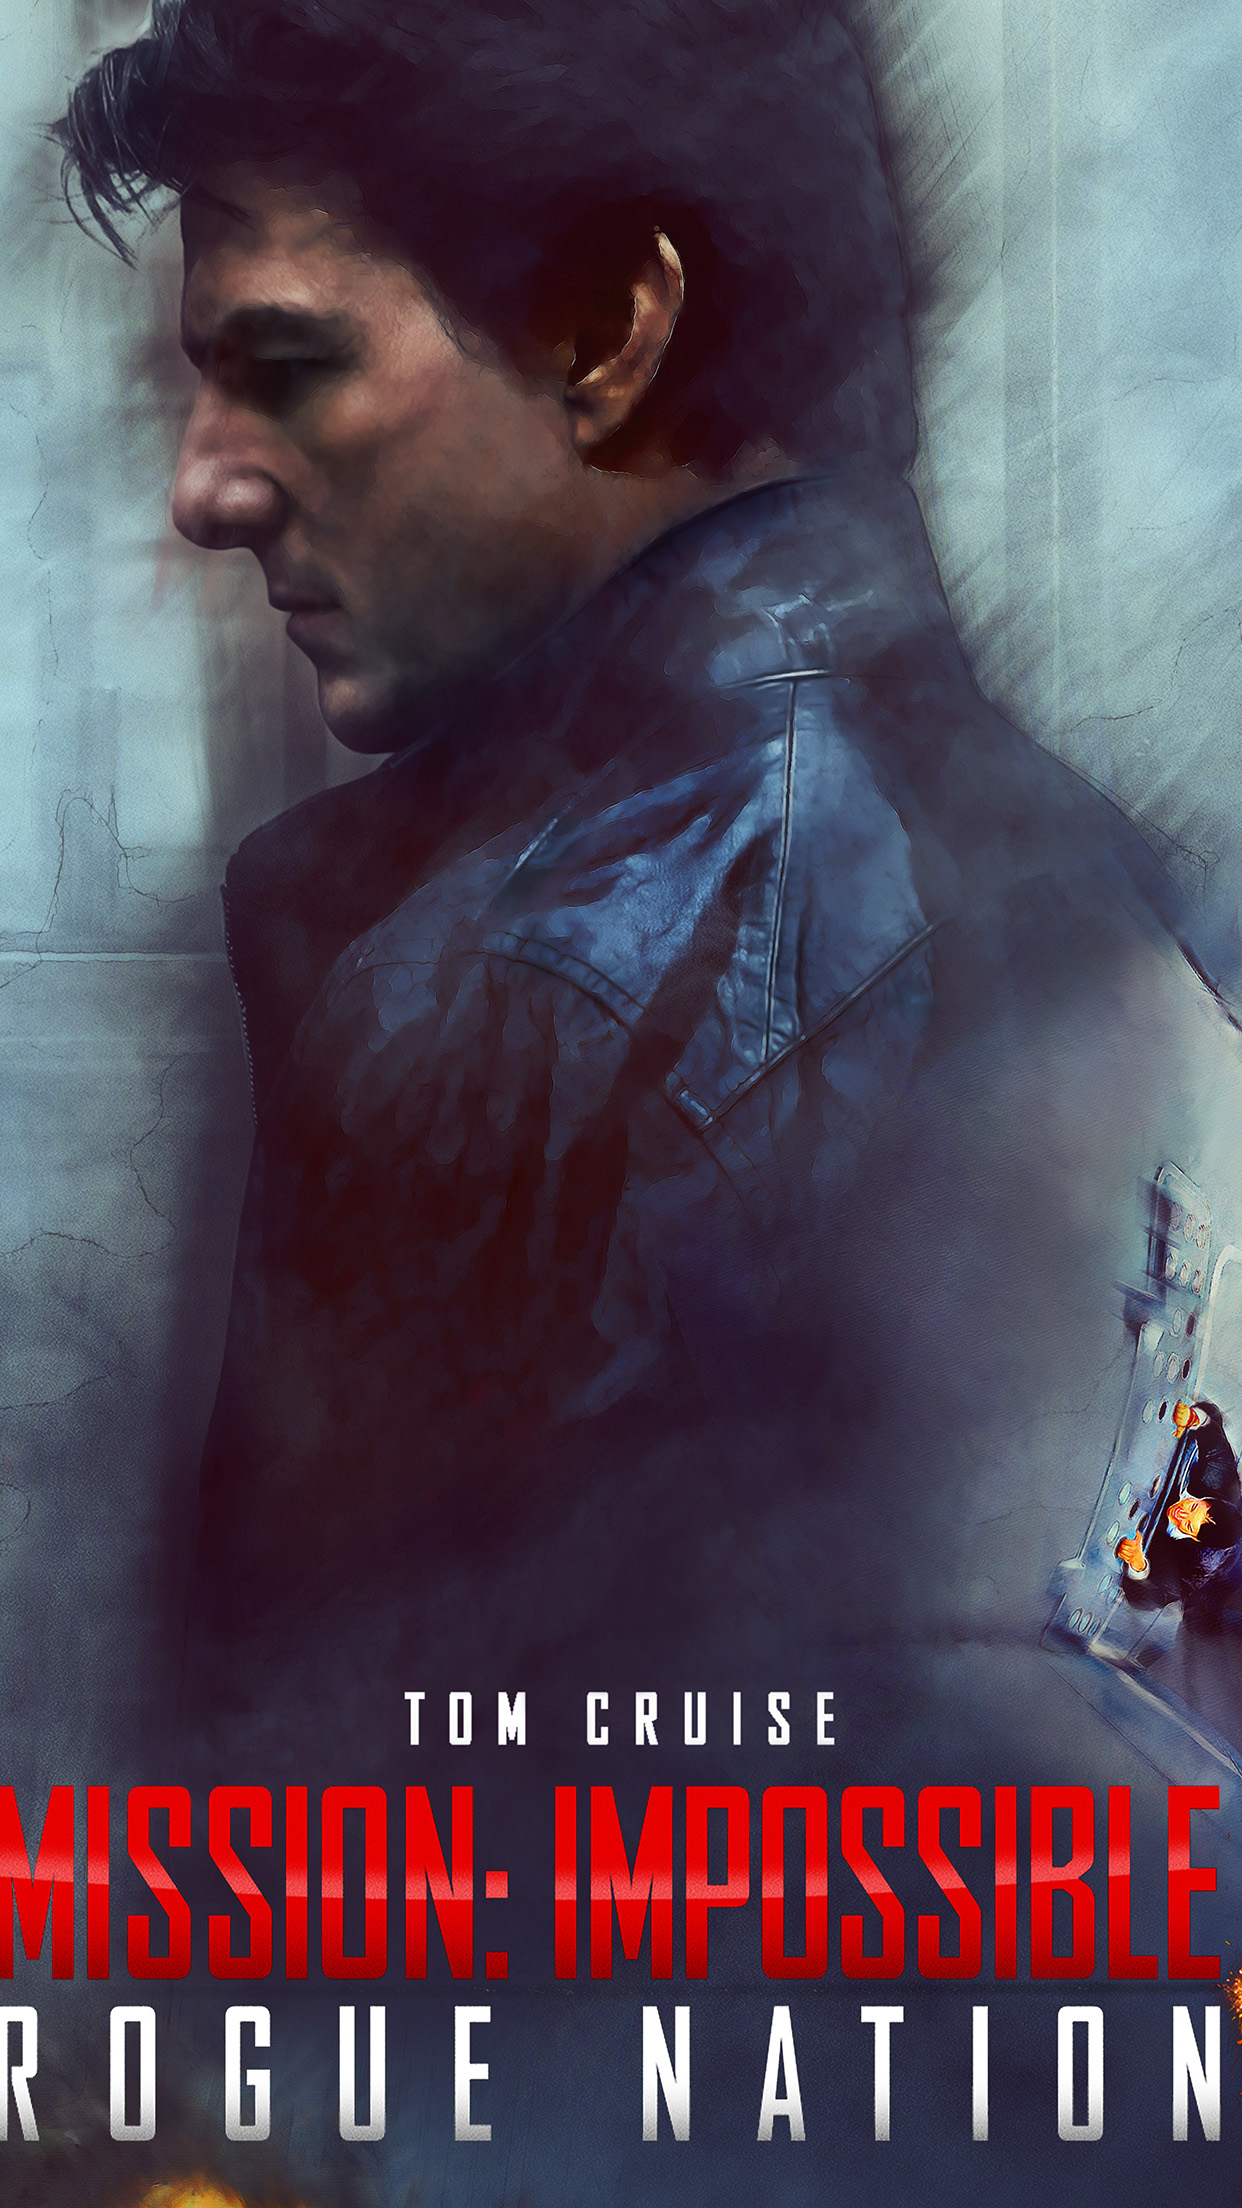 Ao35 Tom Cruise Mission Impossible Rogue Film Poster Papers Co